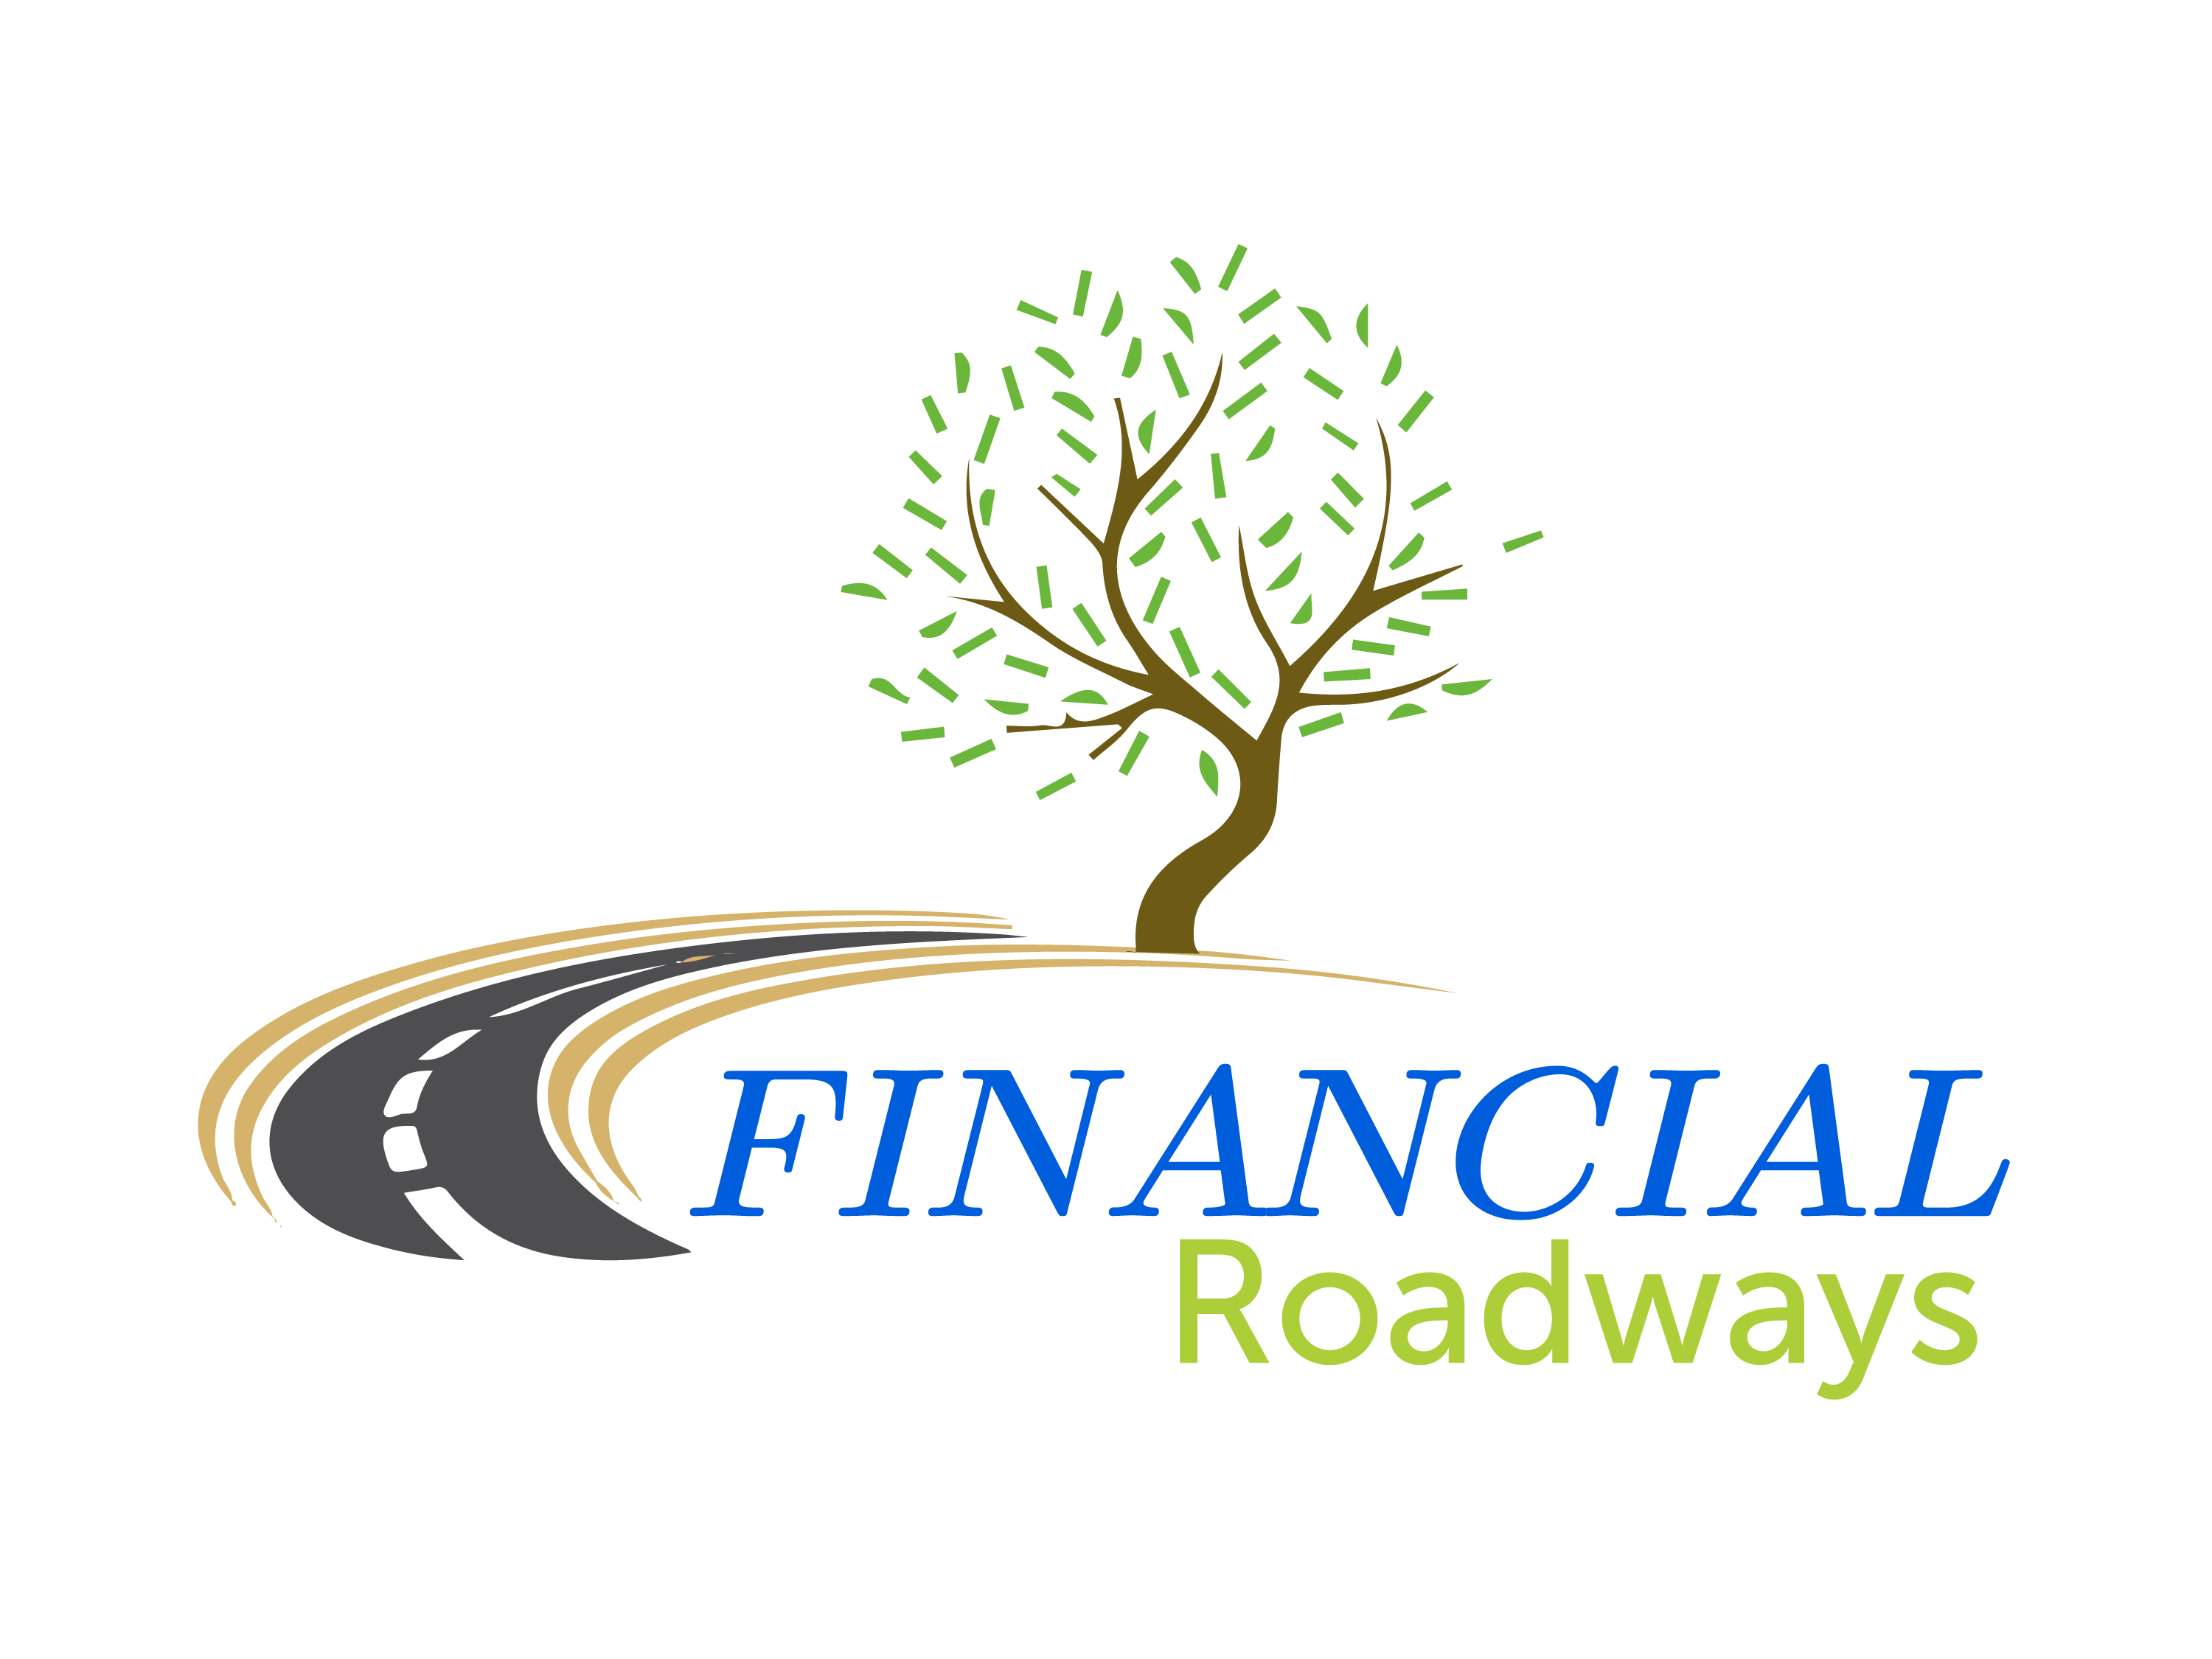 Financial Roadways